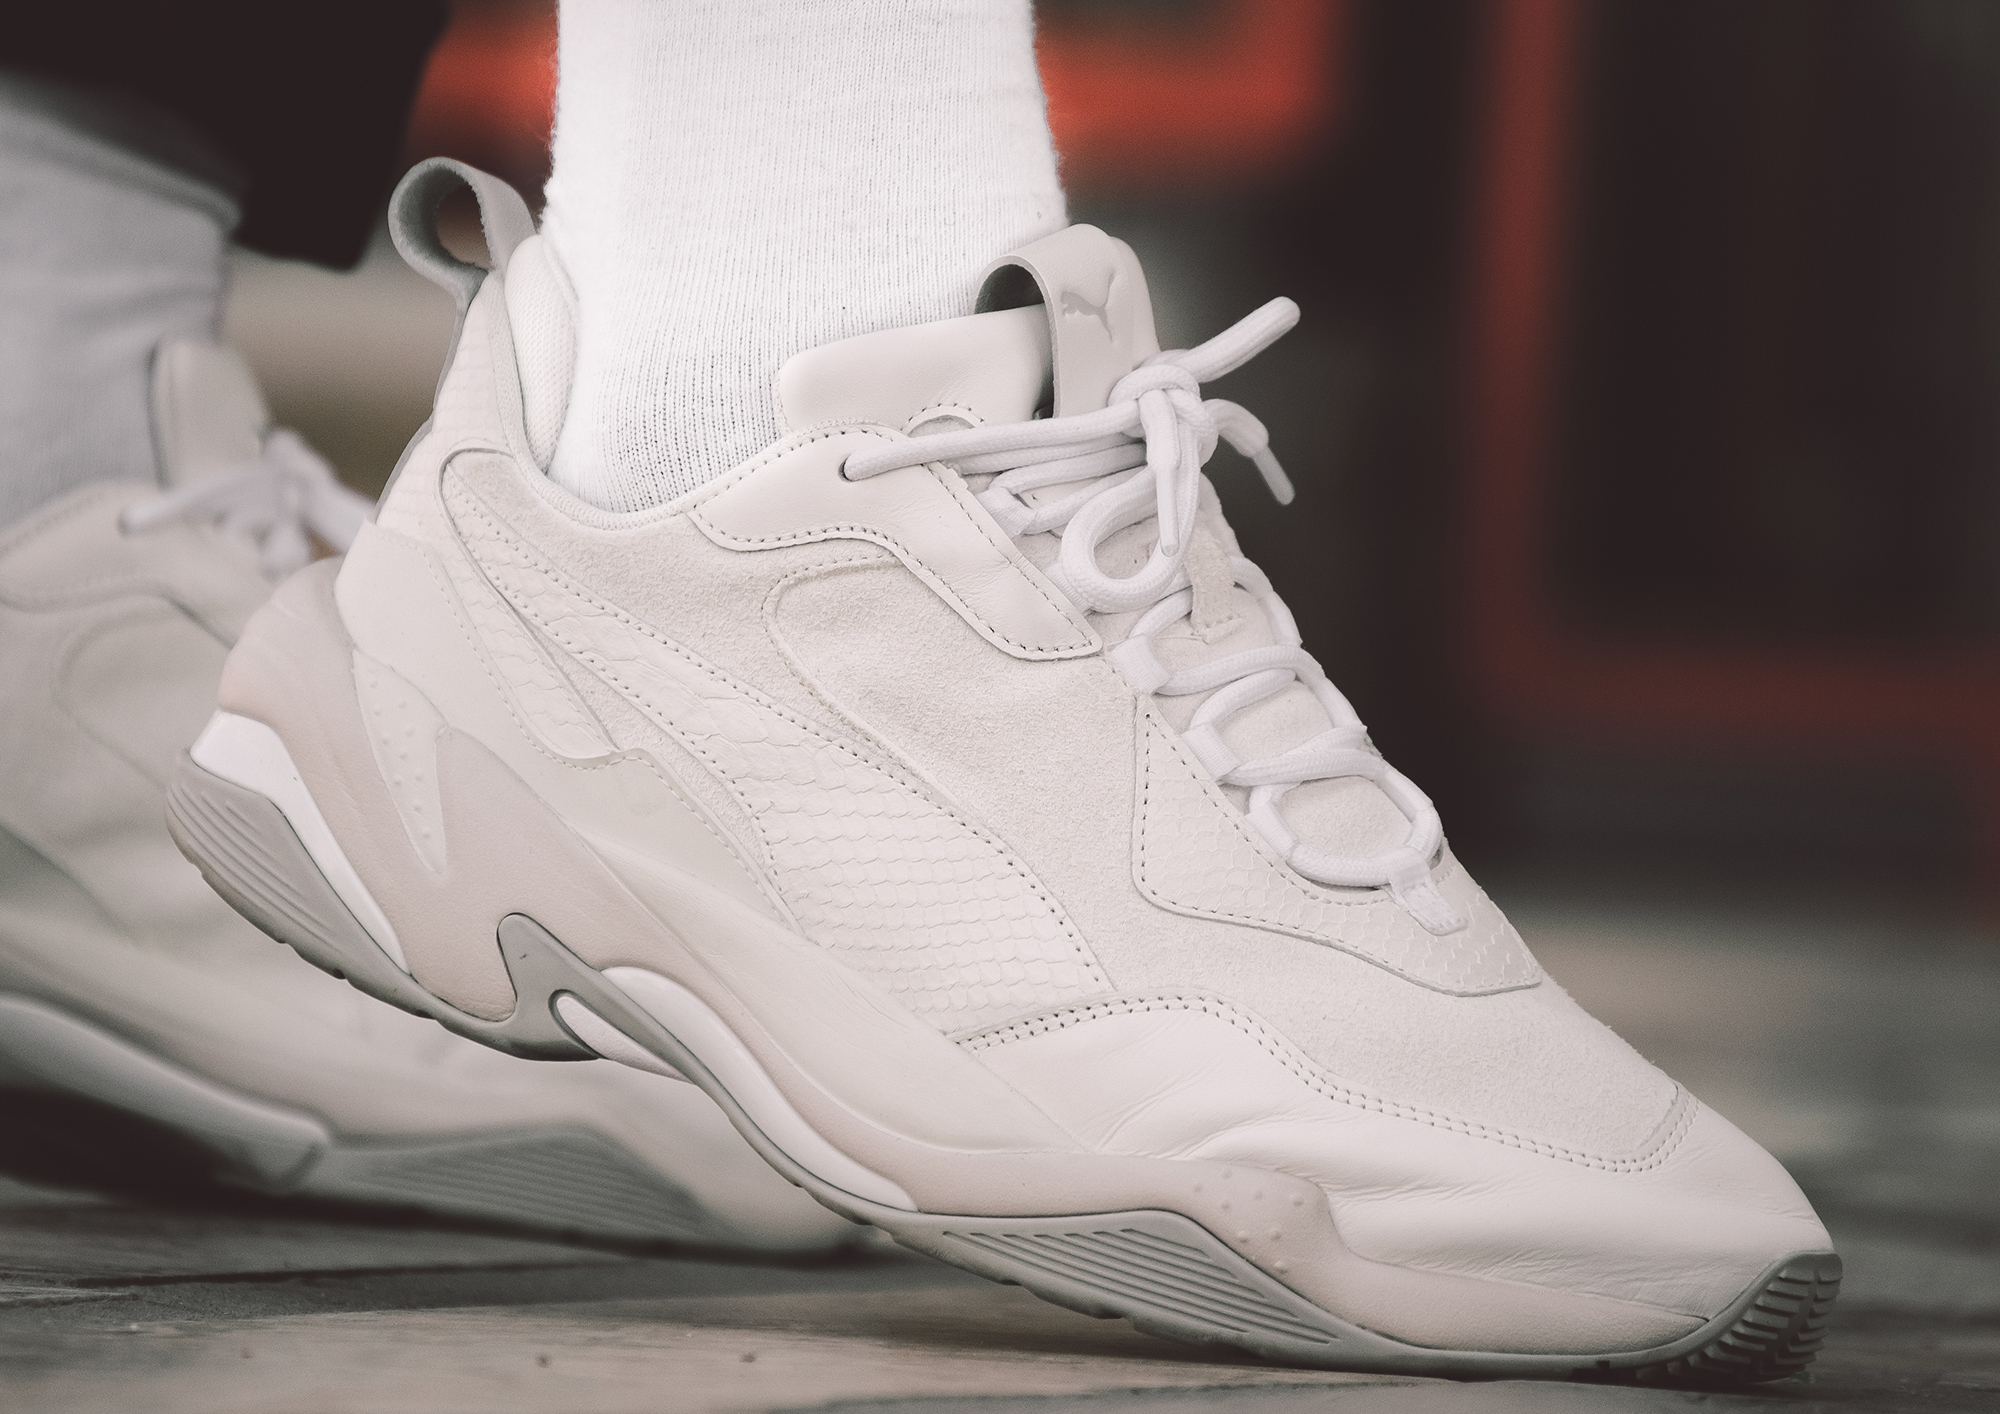 b03ae10a80a0 ... PUMA Thunder Desert styled alongside chino pants